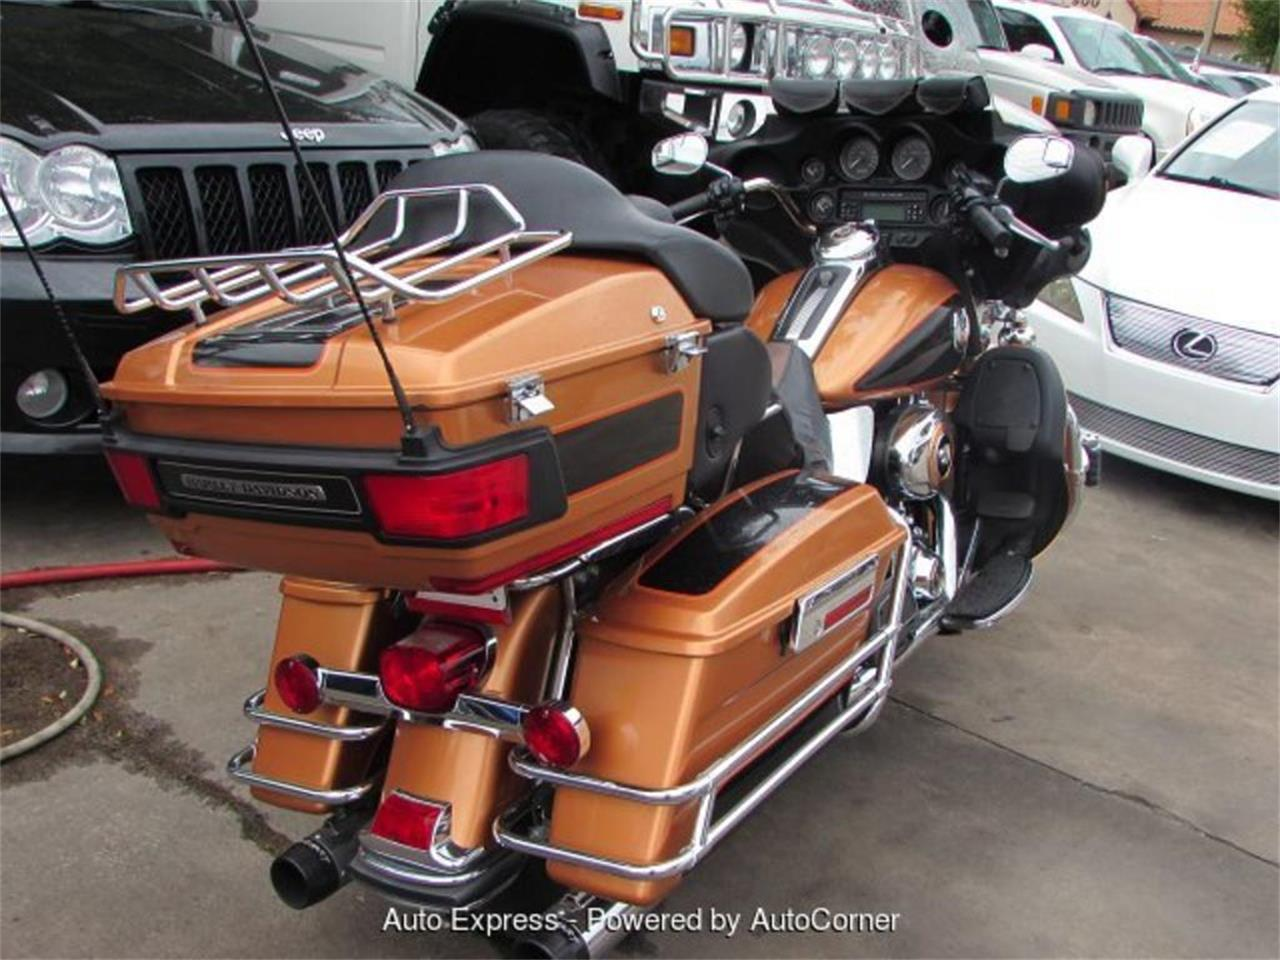 Large Picture of 2008 Electra Glide located in Florida Auction Vehicle Offered by Auto Express - Q598